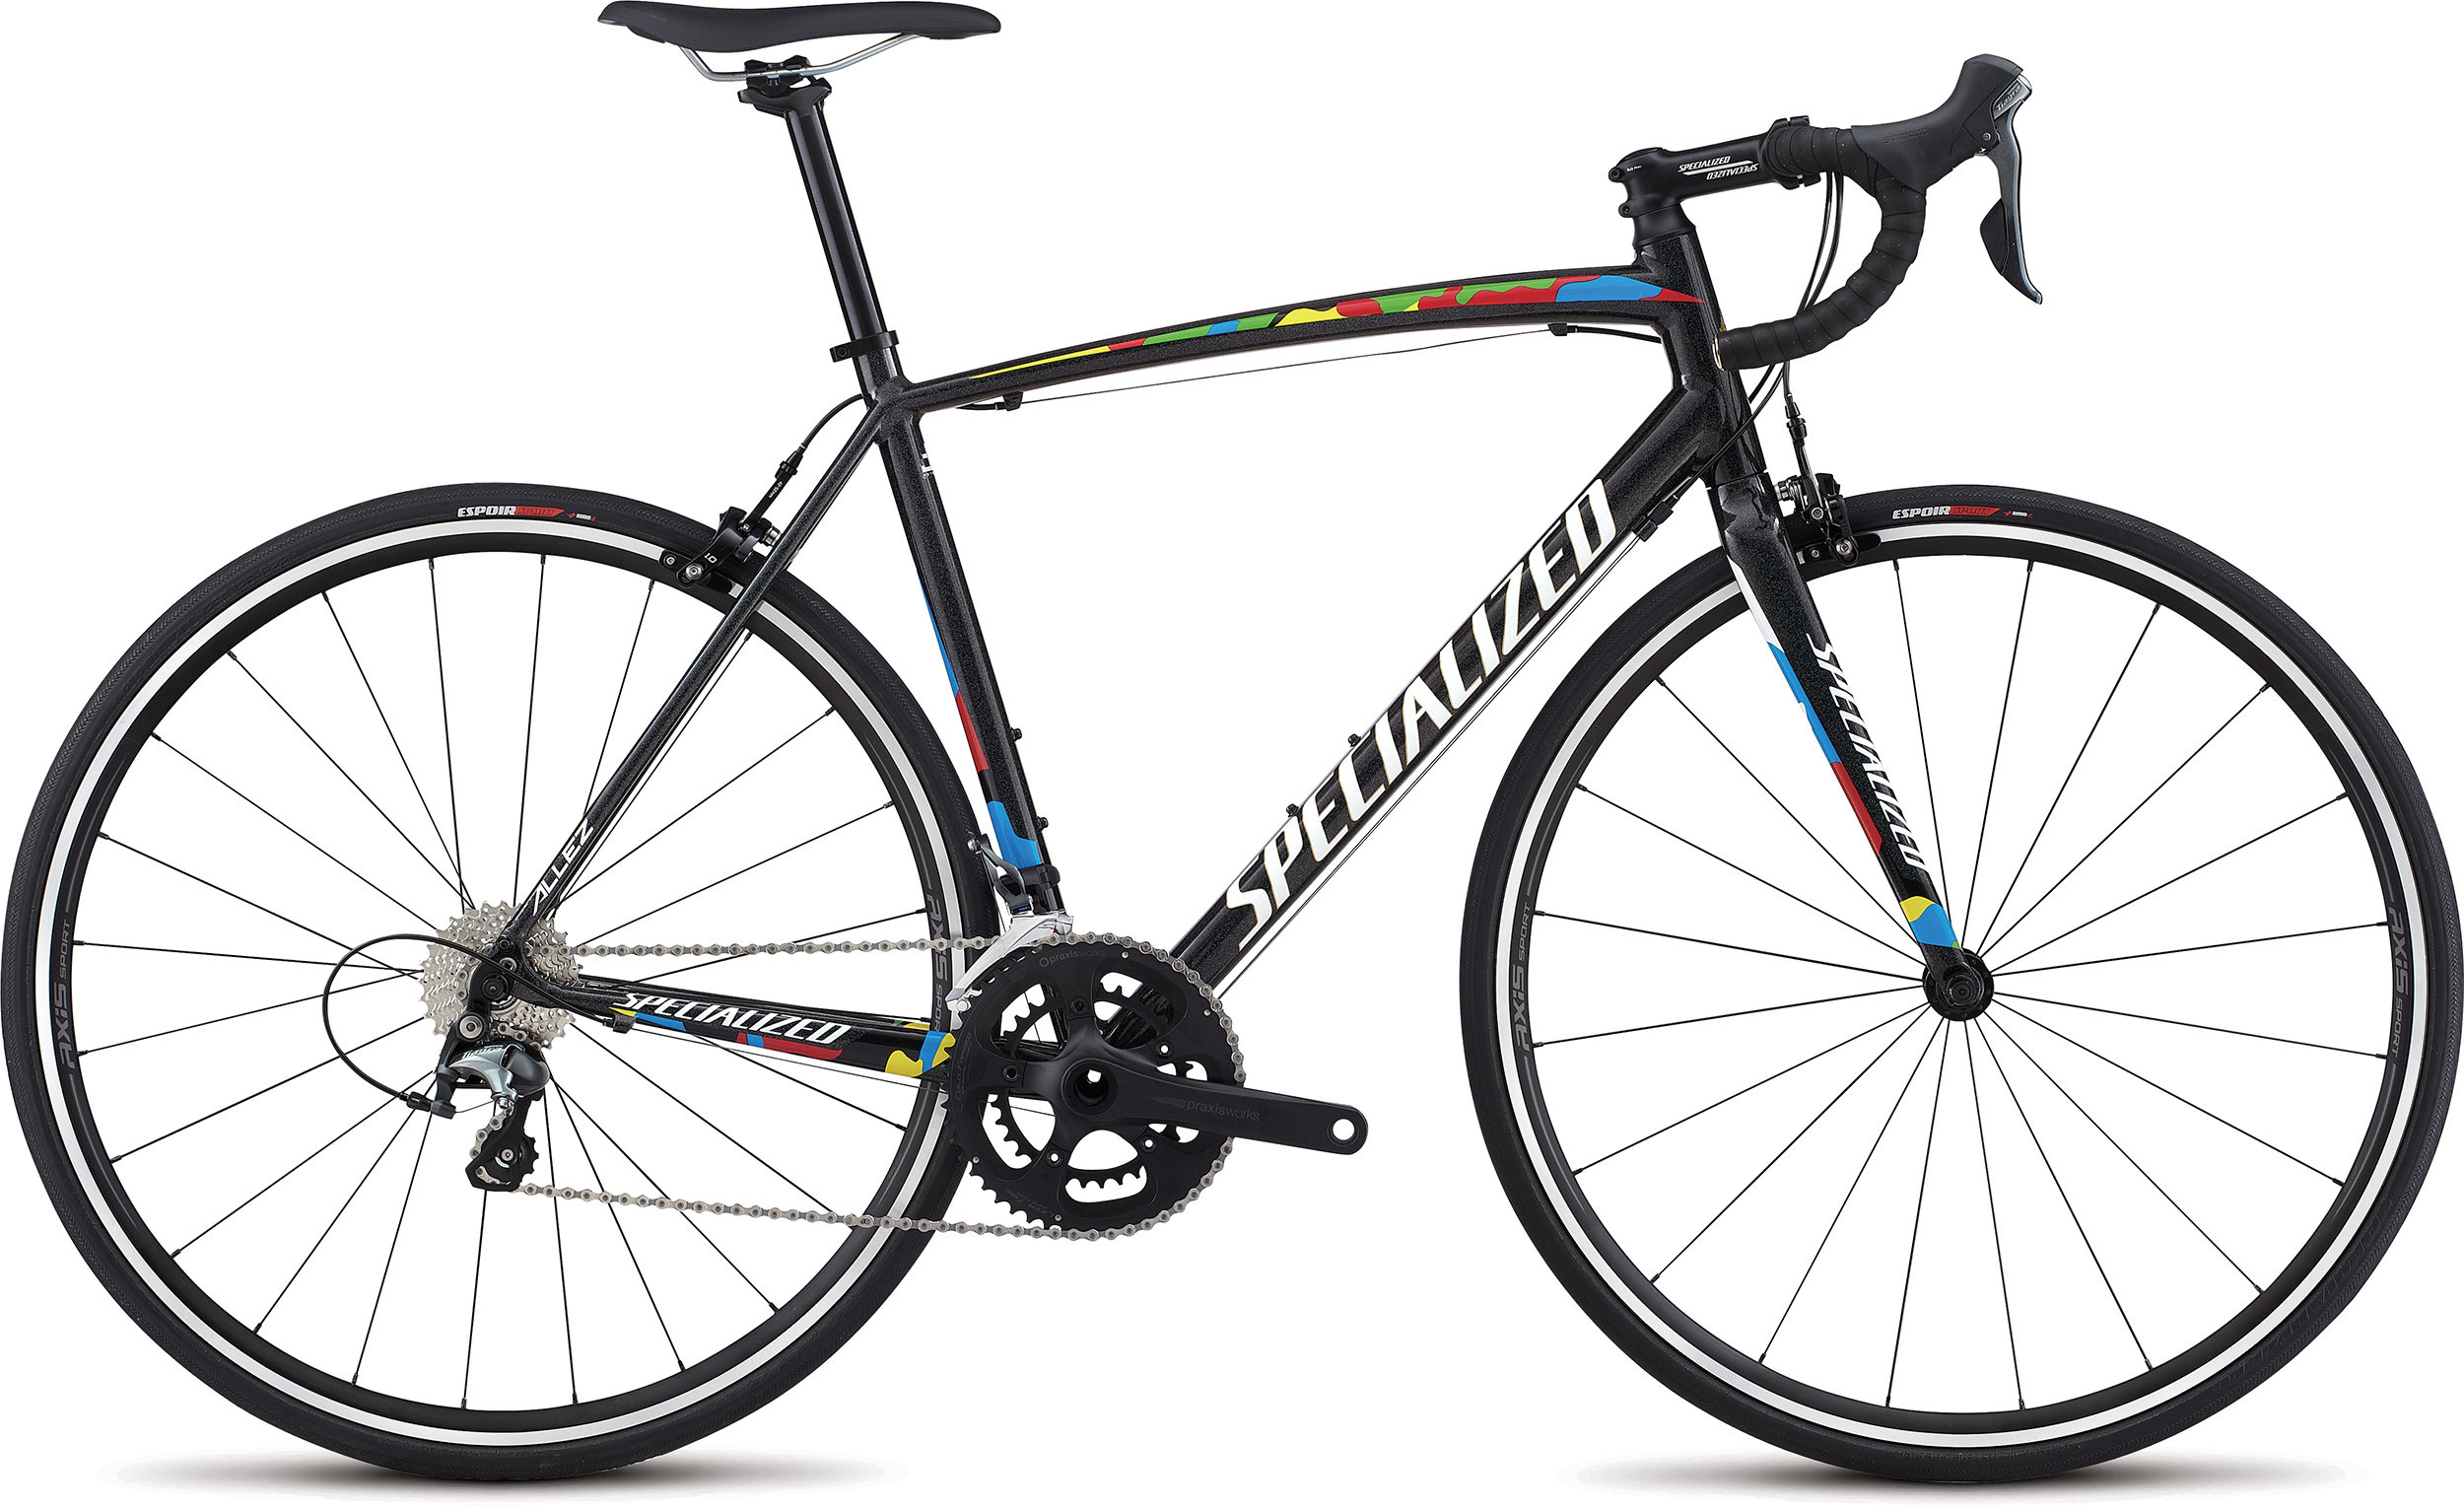 SPECIALIZED ALLEZ E5 ELITE SAGAN WC 52 - SPECIALIZED ALLEZ E5 ELITE SAGAN WC 52